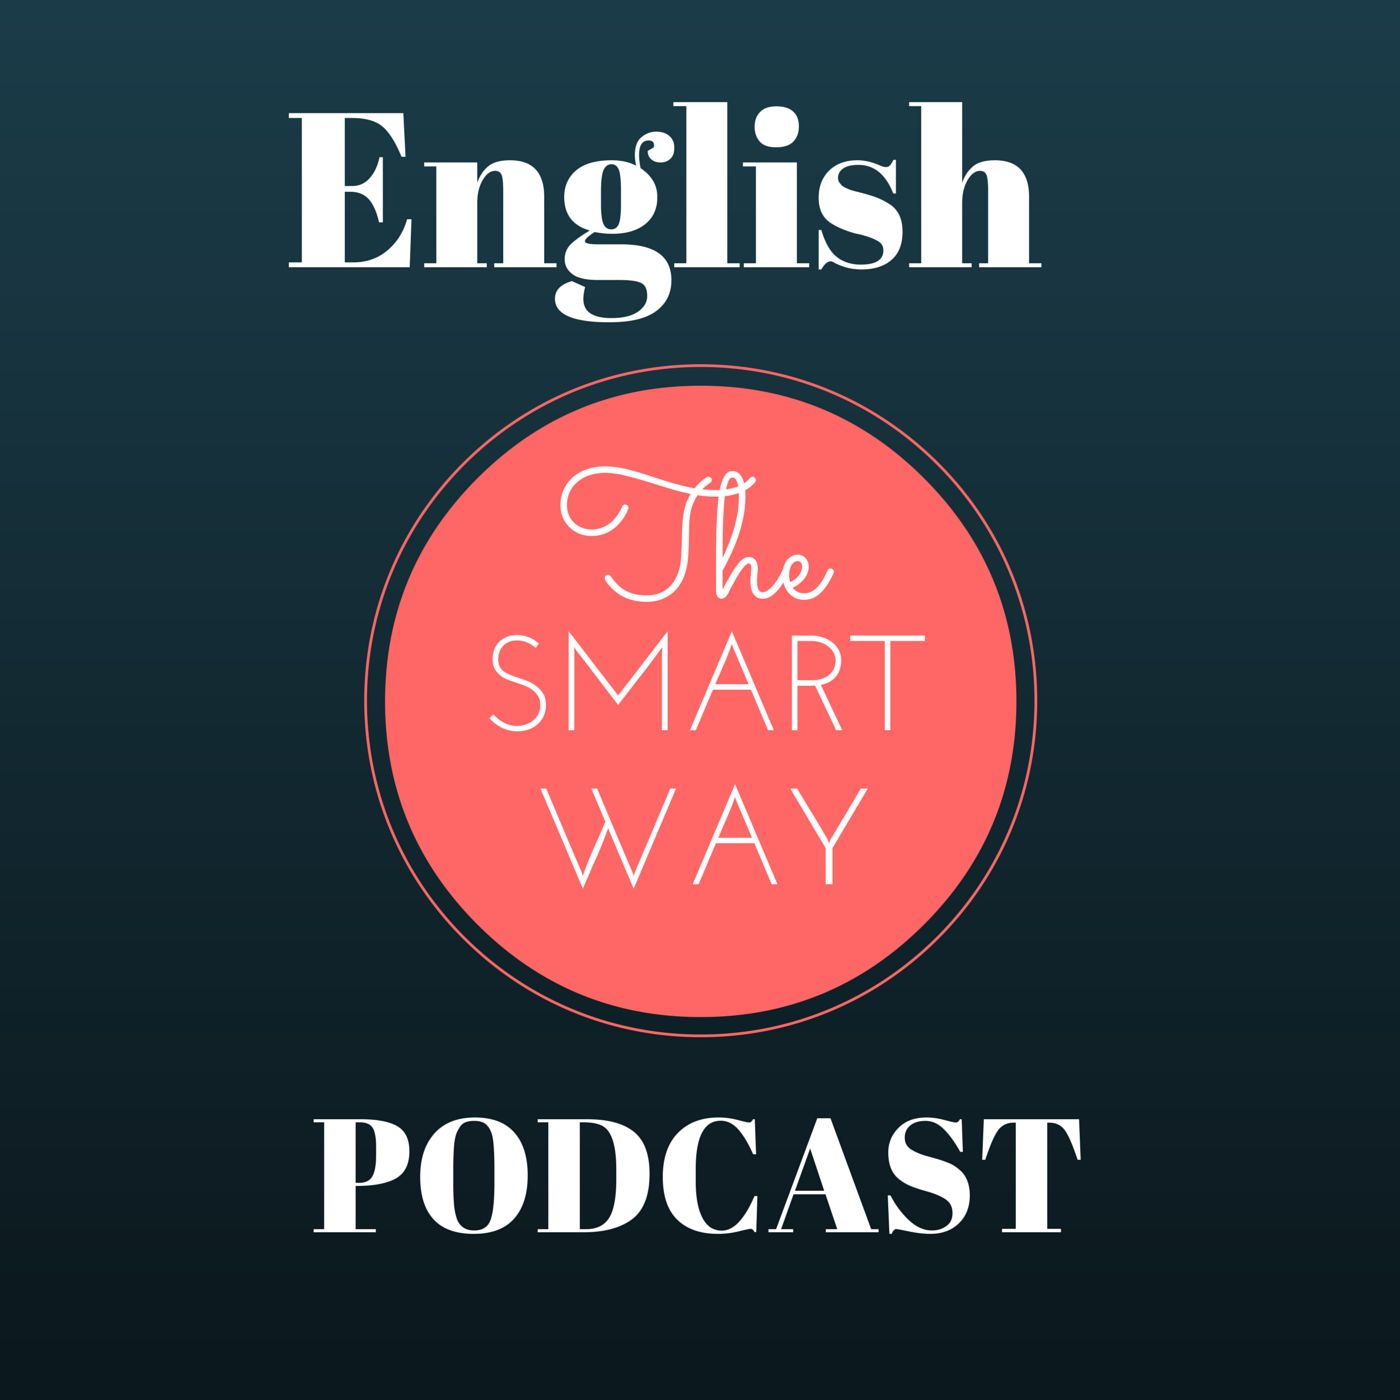 English the Smart Way